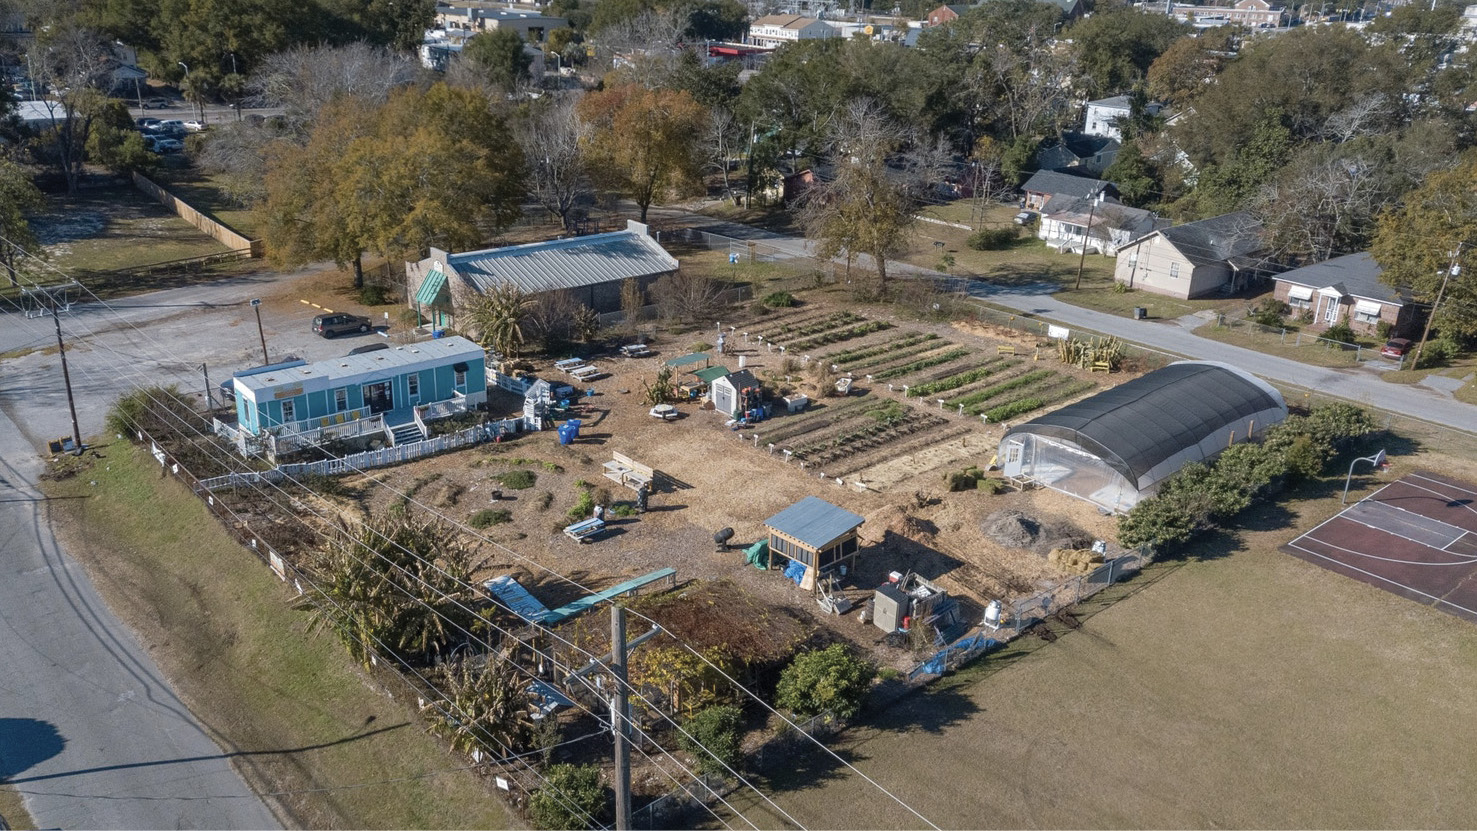 In the formerly vacant lot beside the old Chicora Elementary School, Jenkins and her team have created an urban oasis, where neighbors can buy freshly harvested vegetables and fruits and learn about growing and preparing nutritious food.